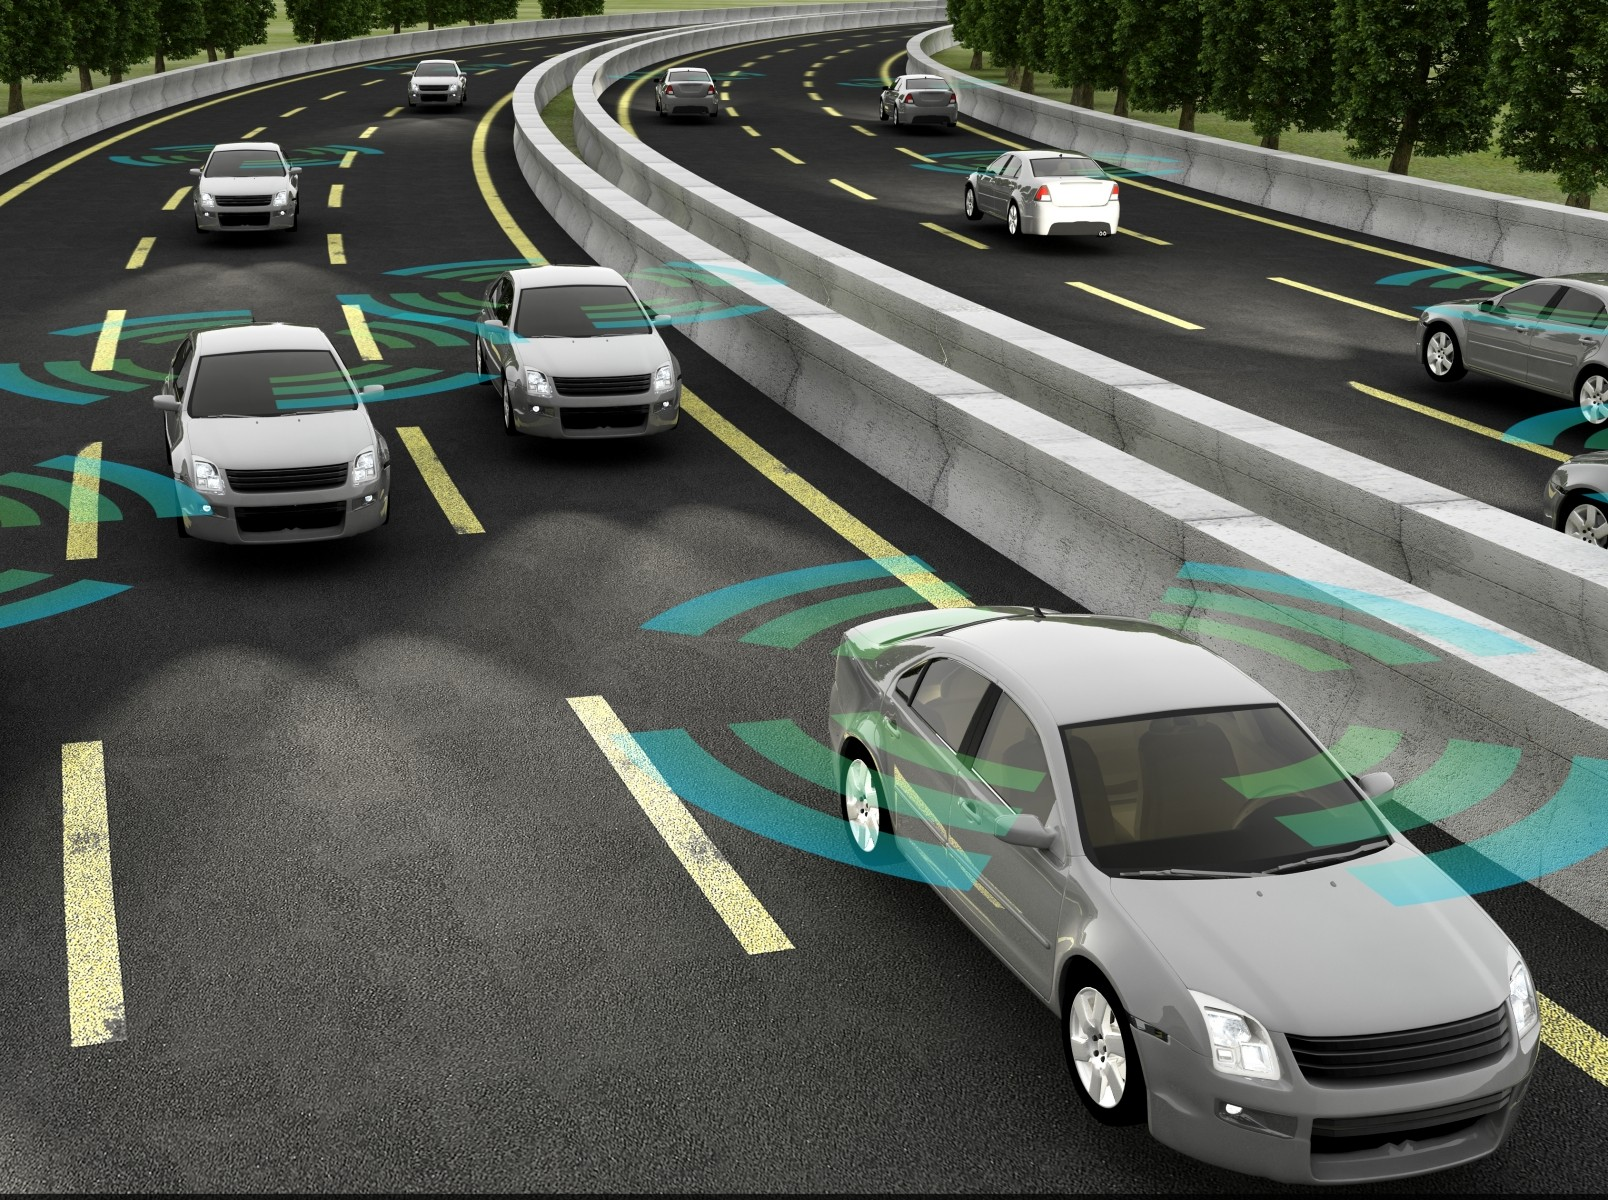 Self-Driving Cars - The Thin Line Between Advancement and